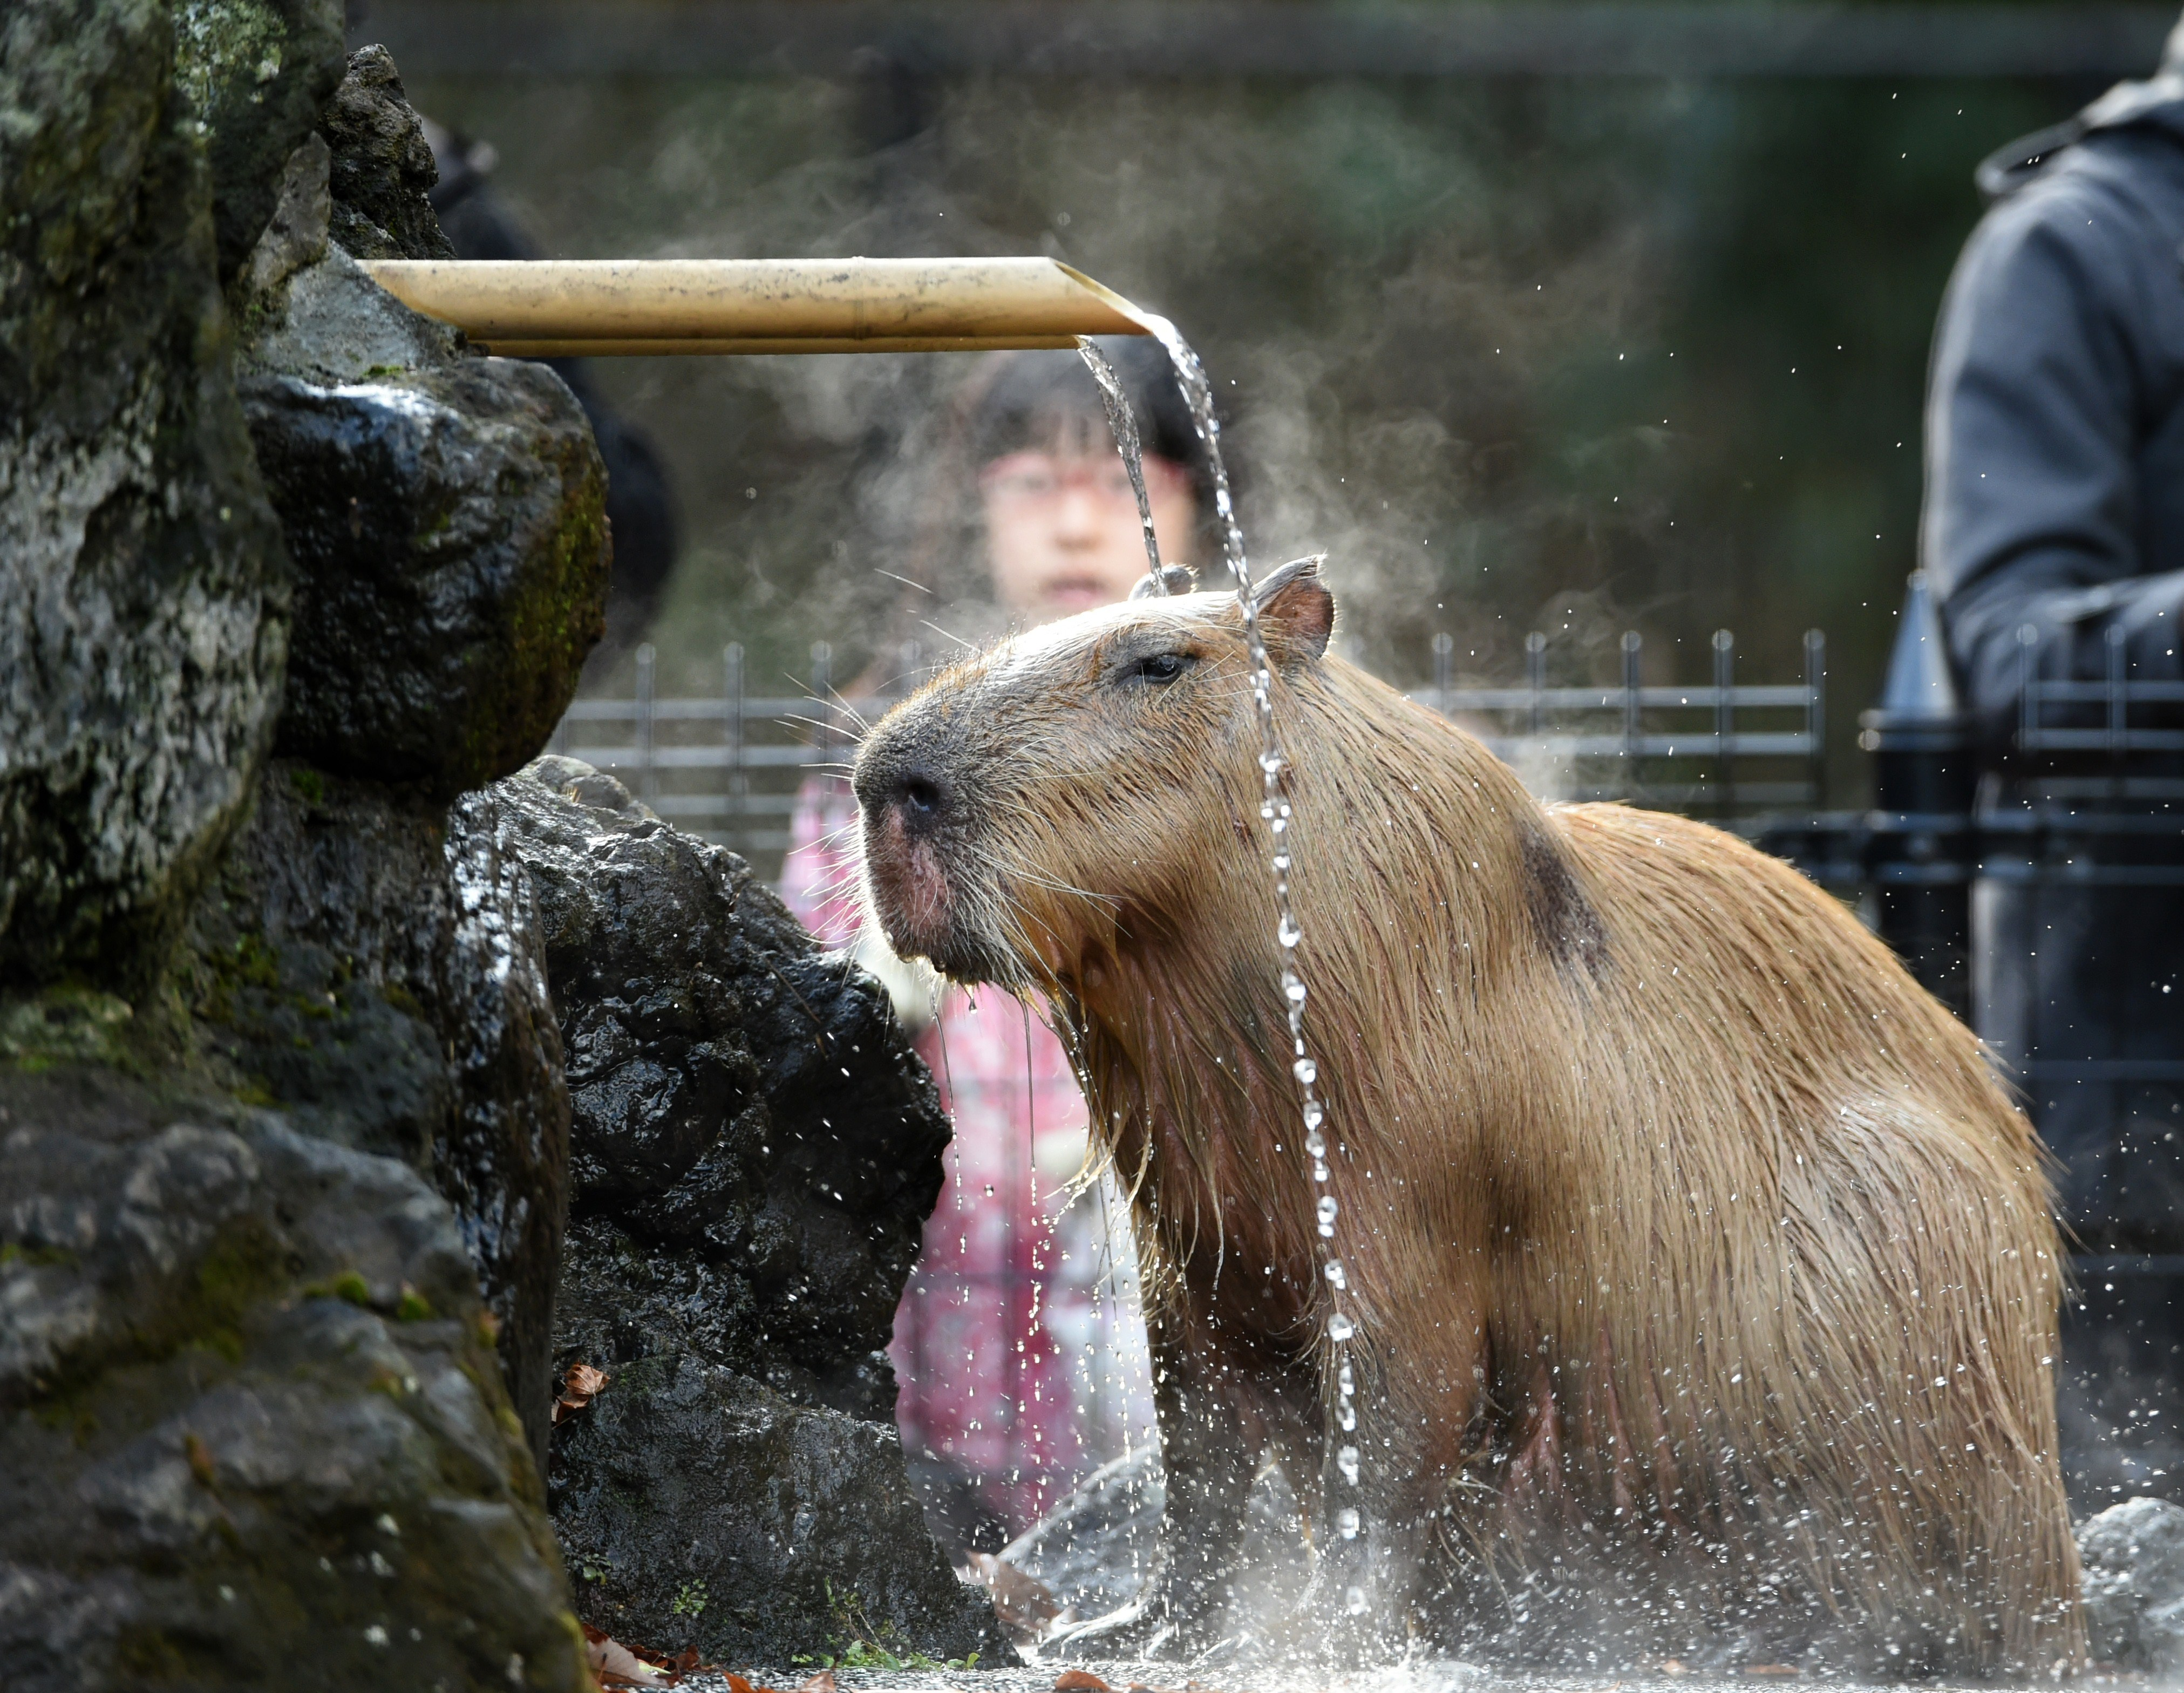 The Verge Review of Animals: the capybara